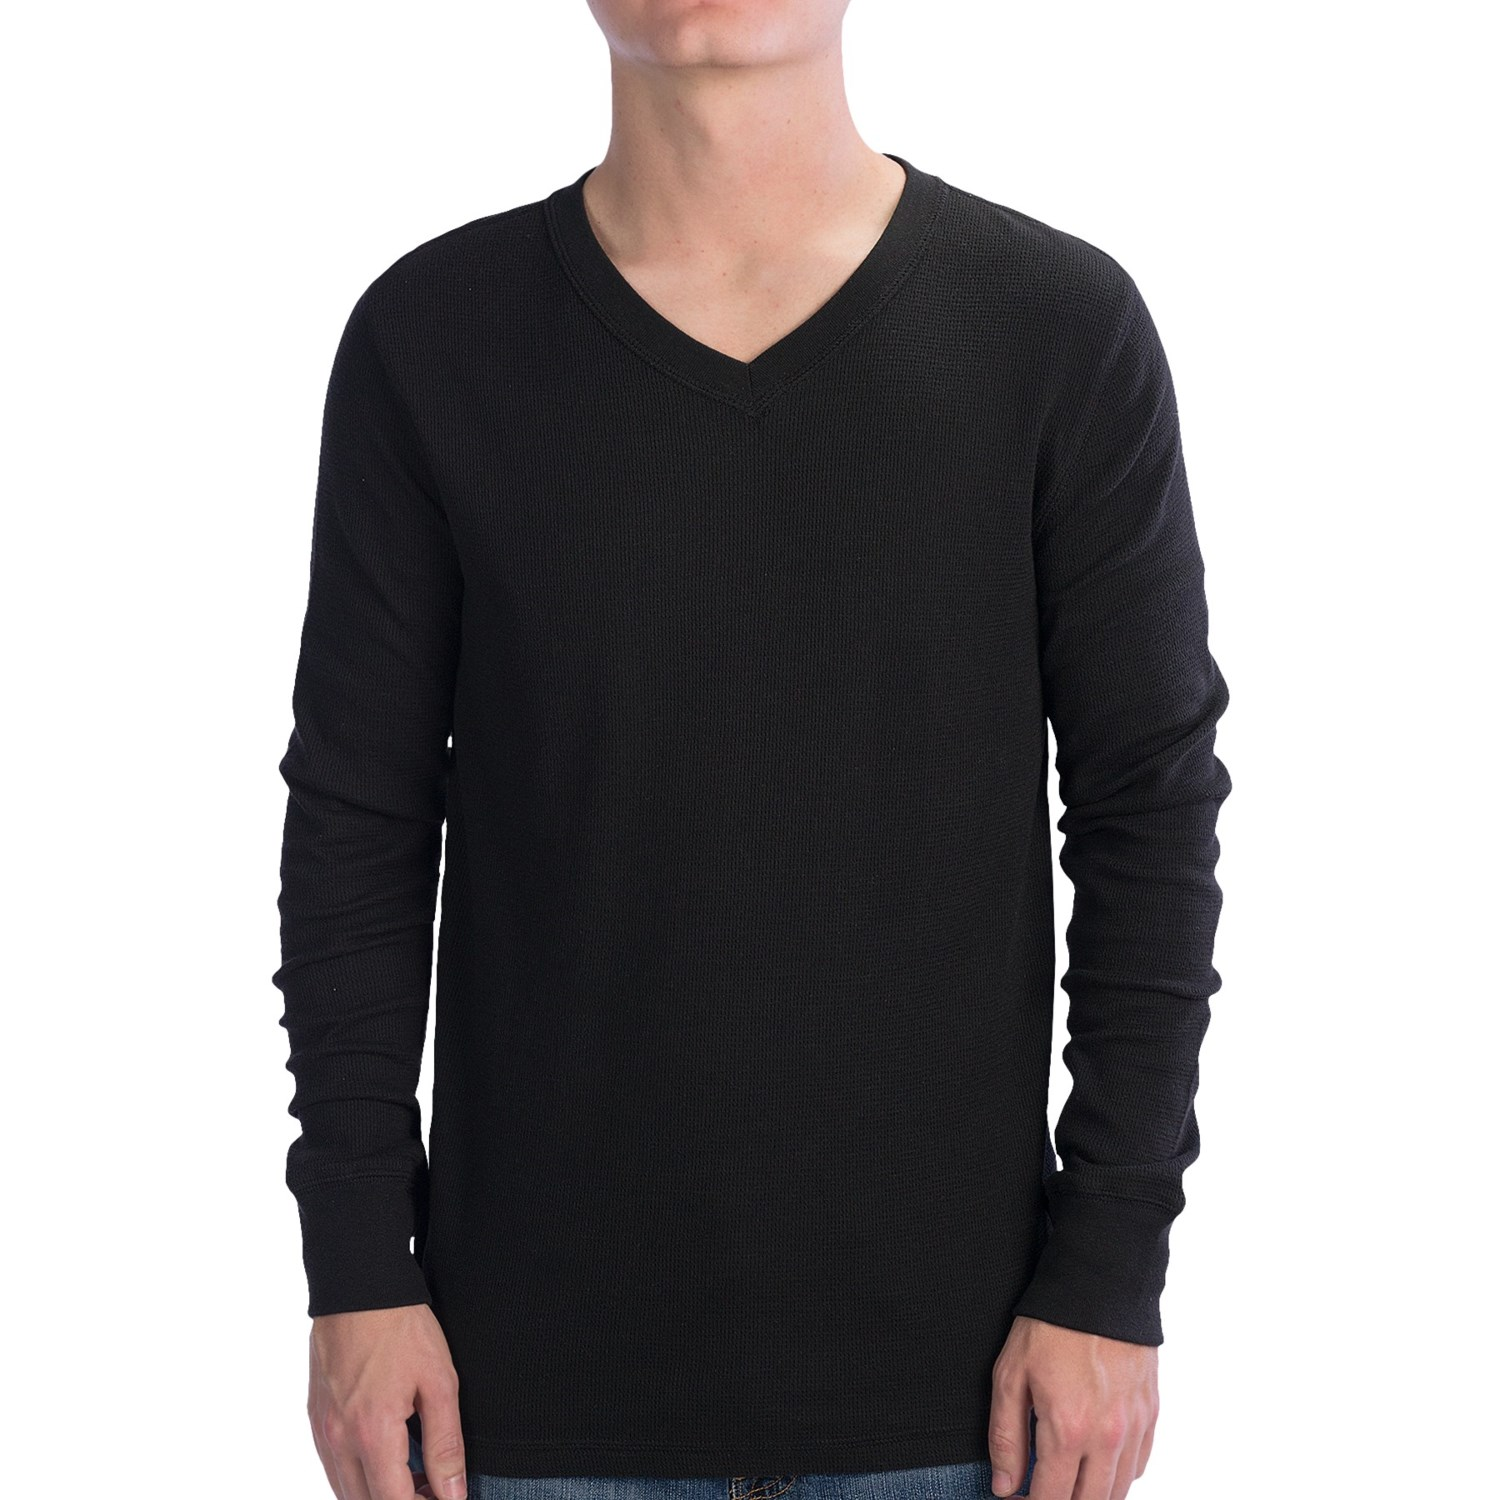 Find great deals on eBay for Mens Long Sleeve V Neck in T-Shirts and Men's Clothing. Shop with confidence. Find great deals on eBay for Mens Long Sleeve V Neck in T-Shirts and Men's Clothing. Shop with confidence. Skip to main content. eBay: Shop by category. Shop by category. Enter your search keyword.